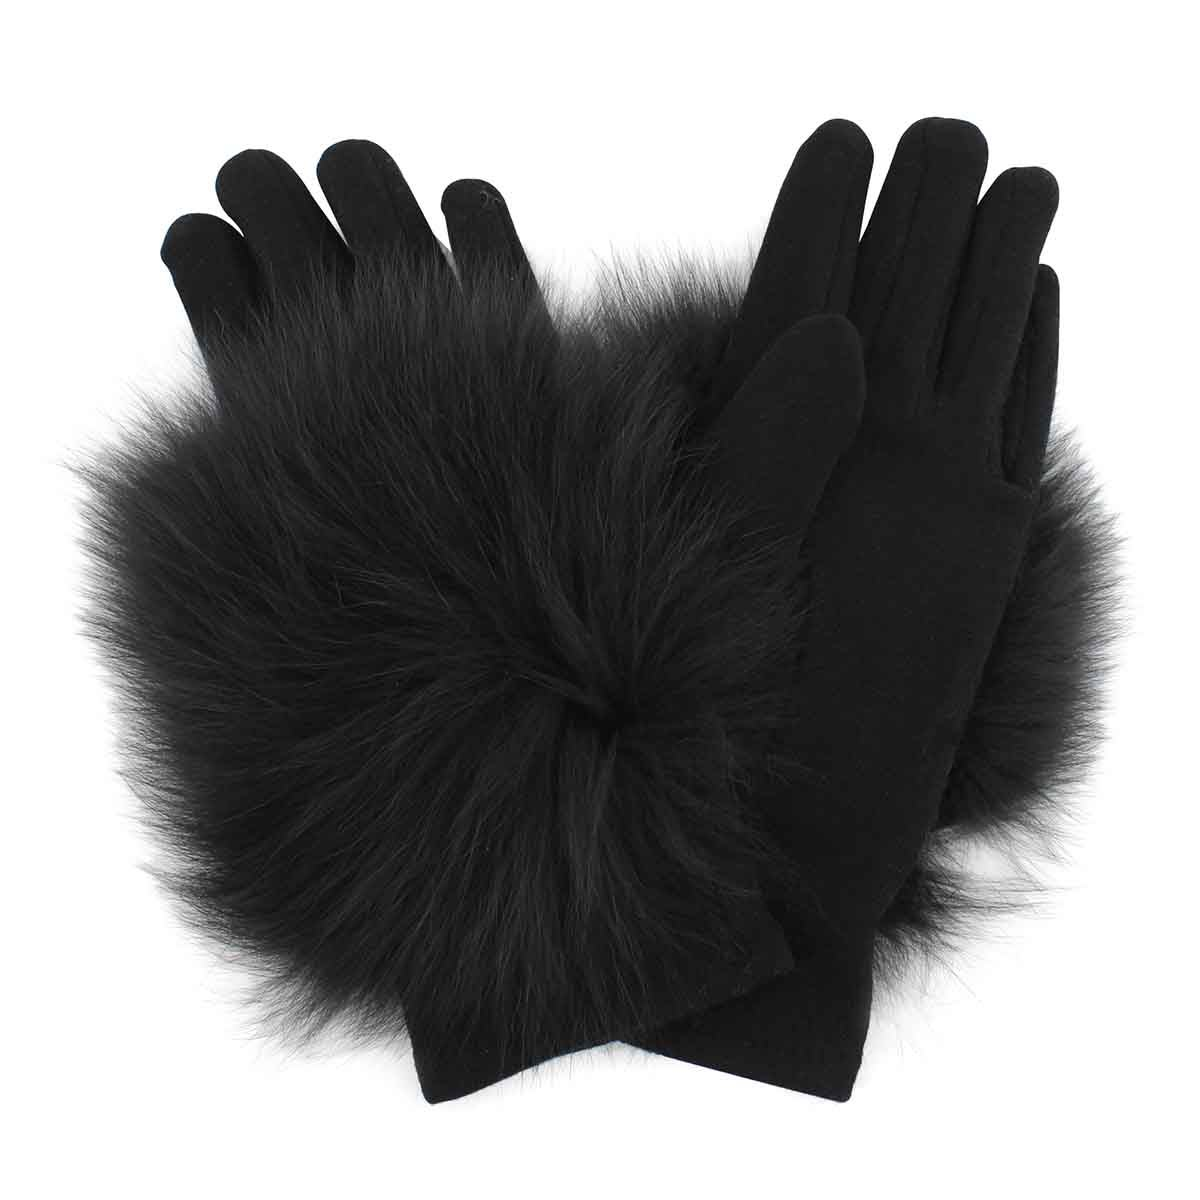 Lds knitted w/ fur piece black gloves